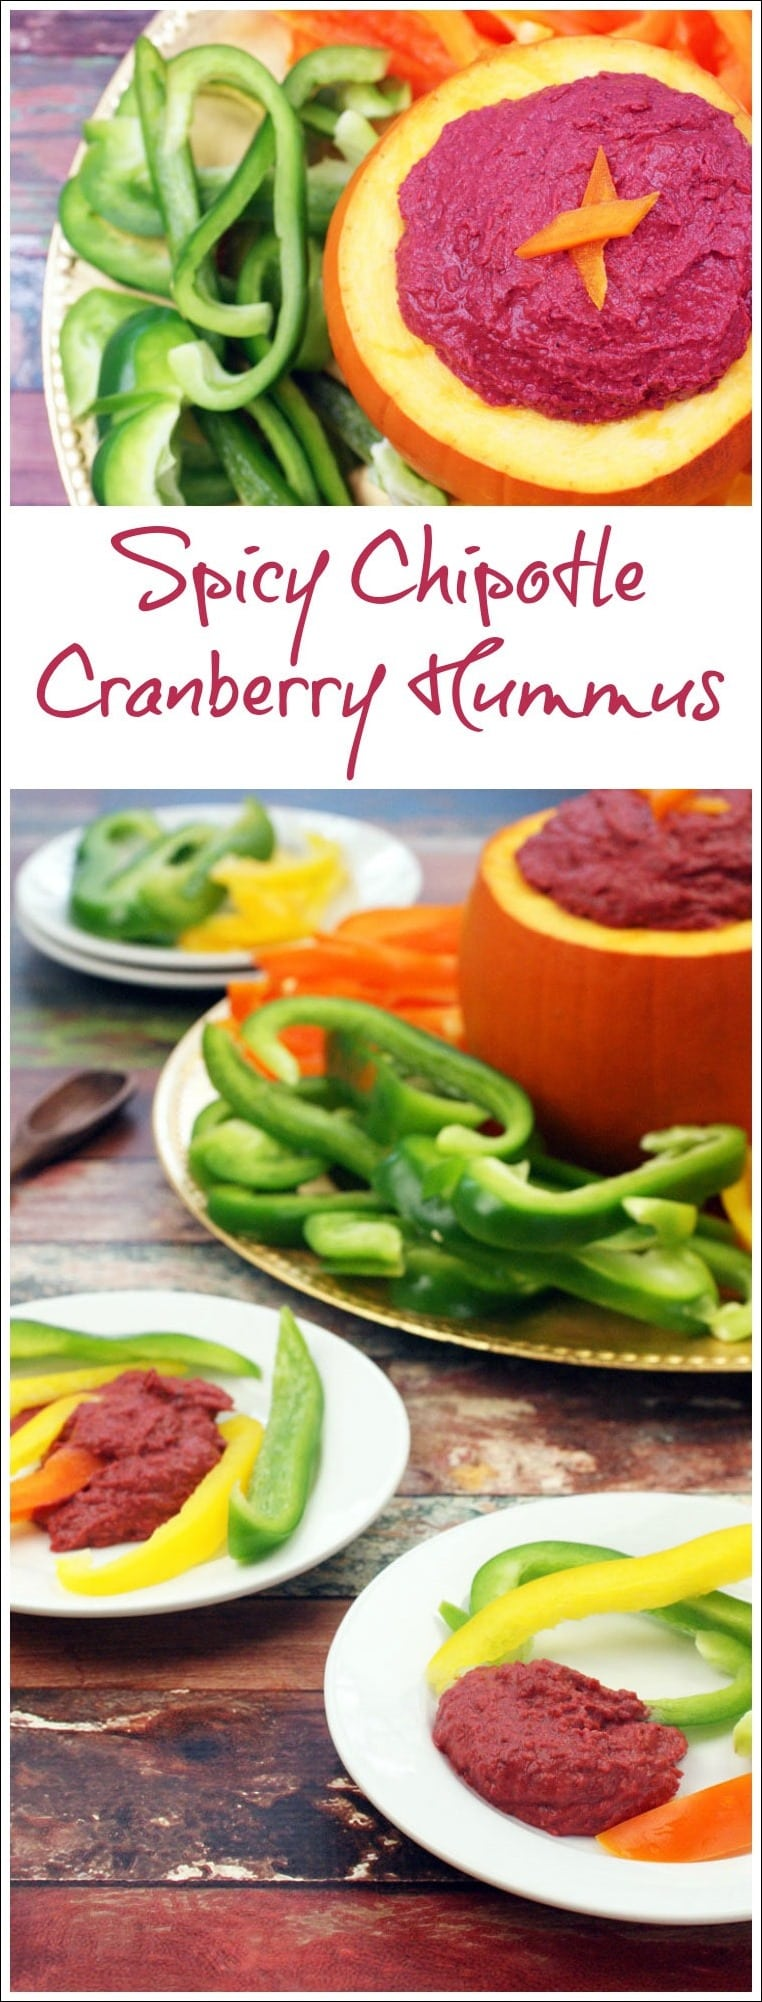 Got leftover cranberry sauce from Thanksgiving? Make Spicy Chipotle Cranberry Hummus! It's healthy and gluten free. Get this quick and easy party appetizer recipe at This Mama Cooks! On a Diet